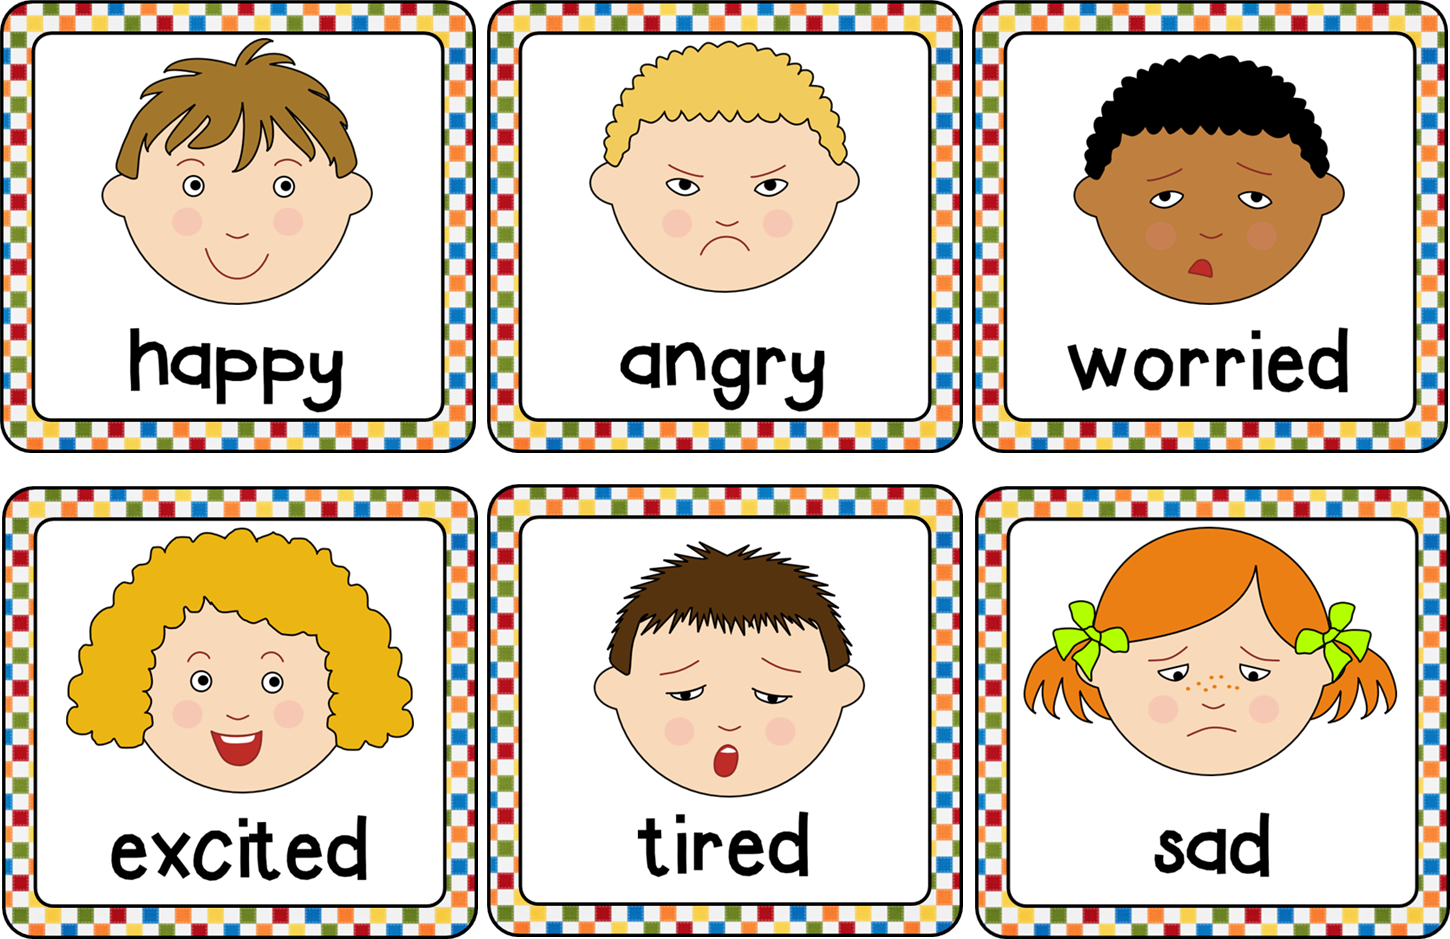 Emotions projects to try. Kindergarten clipart social emotional learning